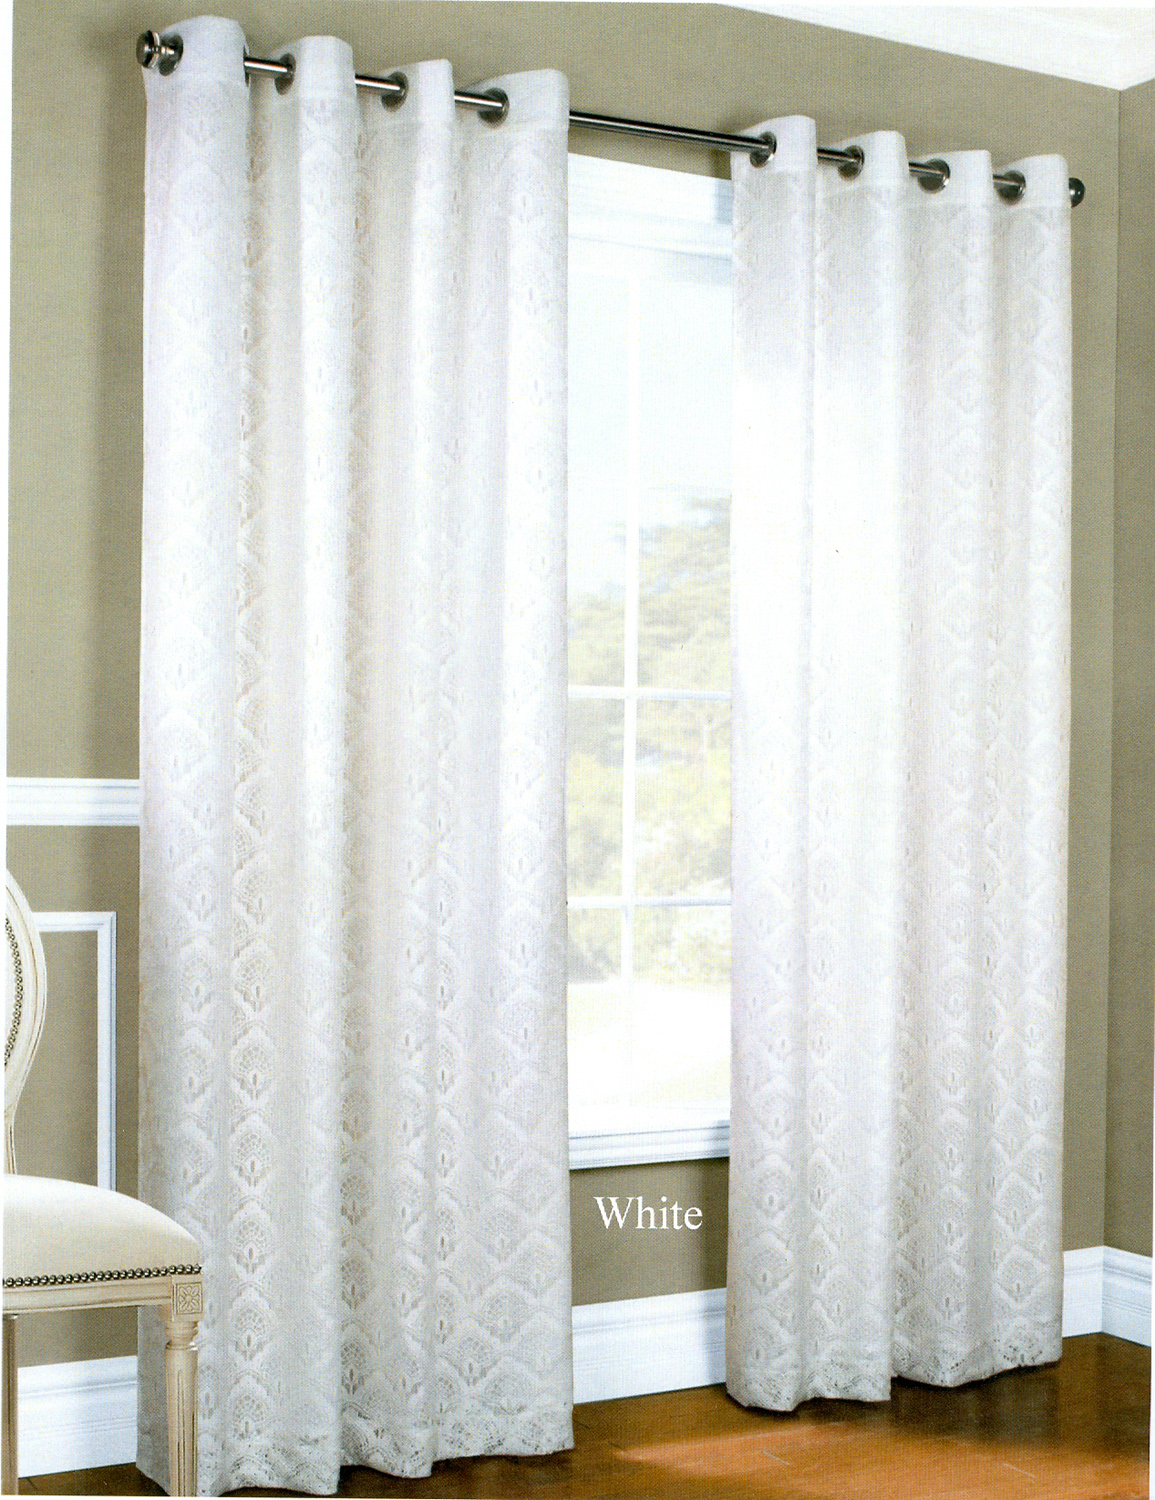 Grommet Curtains Tab Top Curtains - Grommet Curtain panels